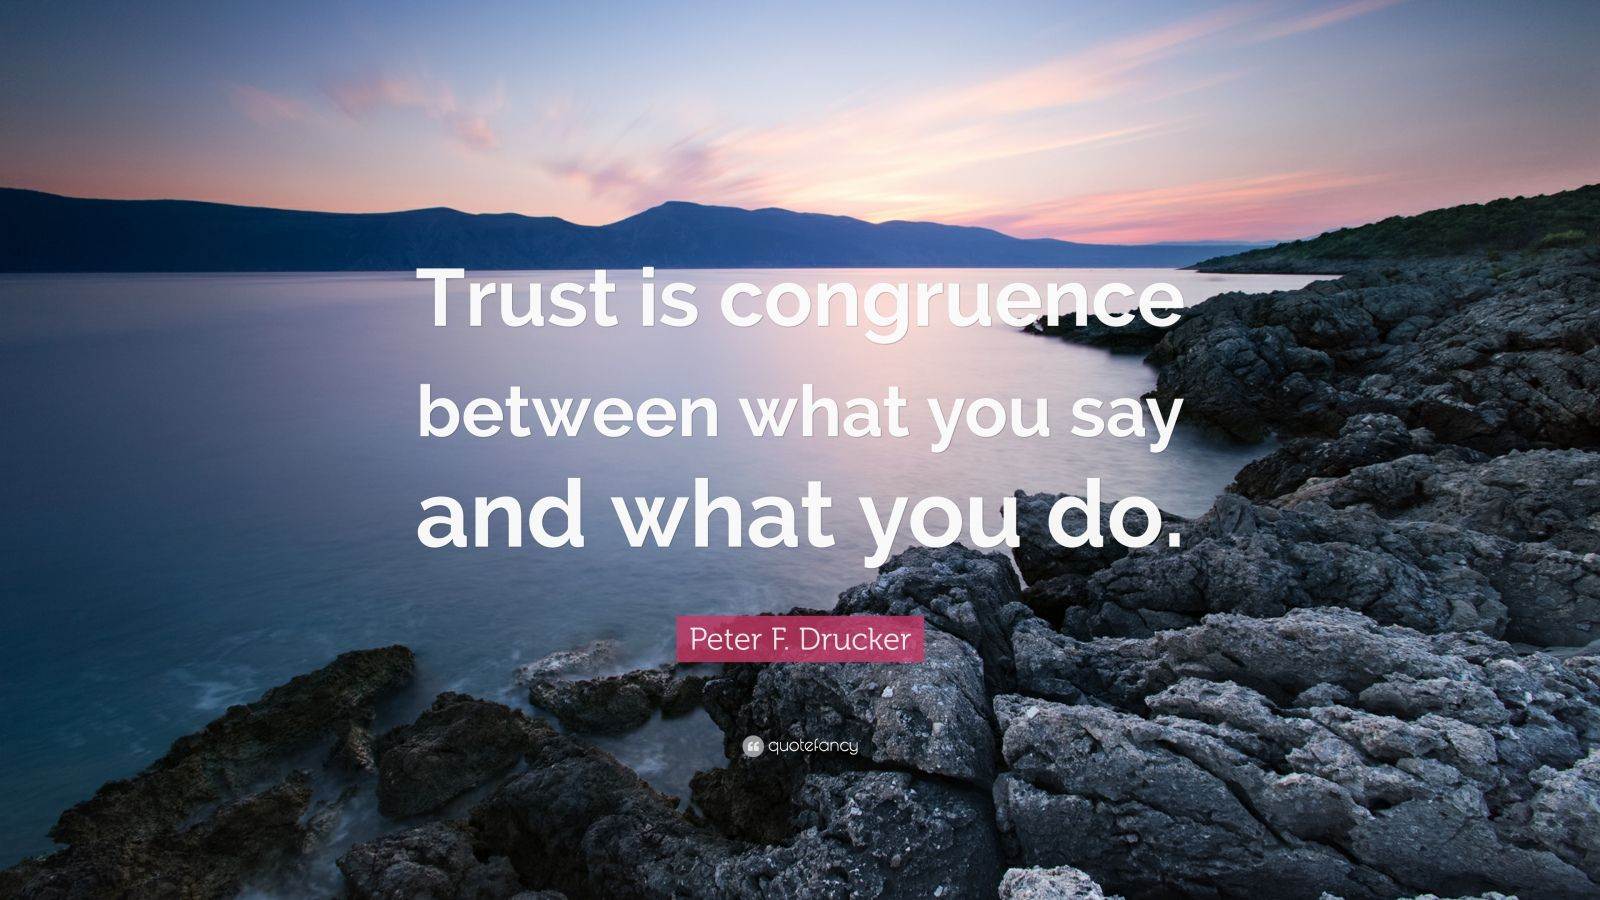 """Peter F. Drucker Quote: """"Trust is congruence between what you say and what you do."""""""